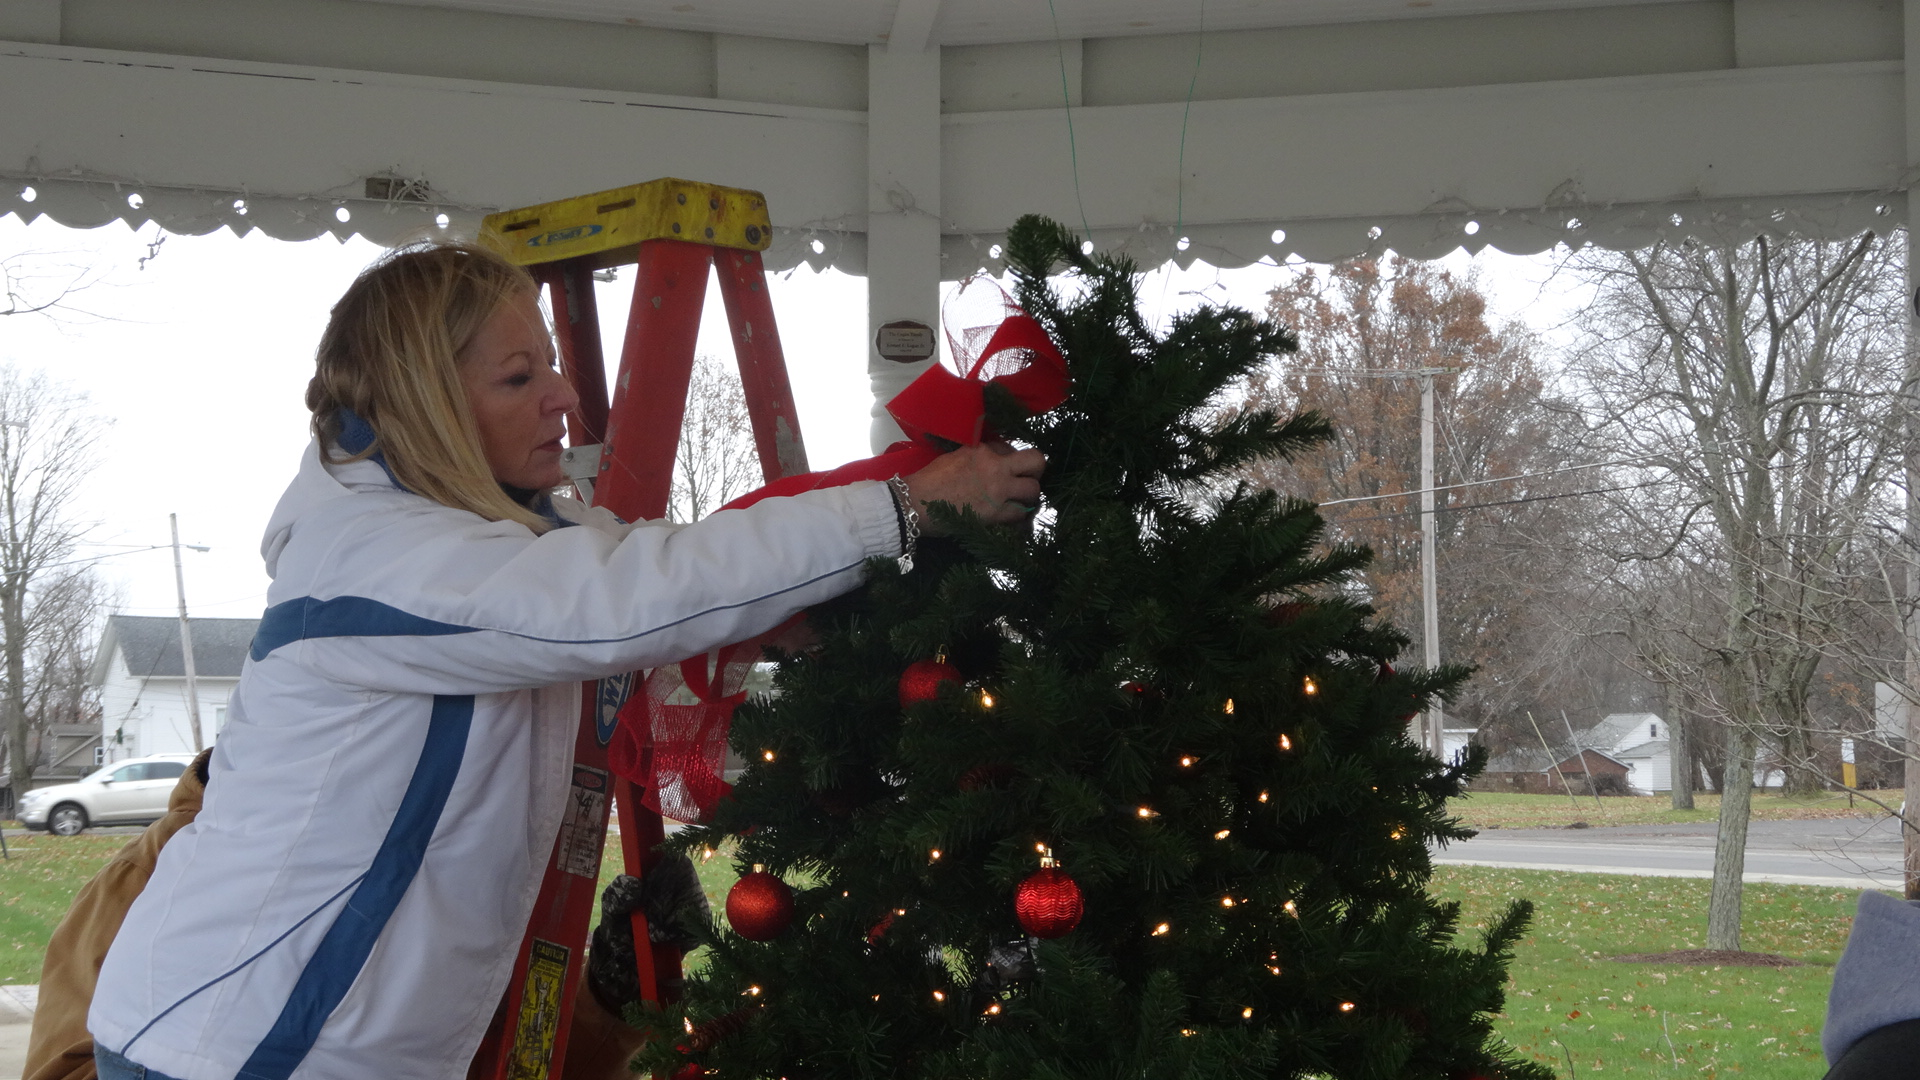 Judy Pushcar pf the Brookfield Township Historical Commission decorates the Christmas tree in the gazebo on the green in Brookfield Center.